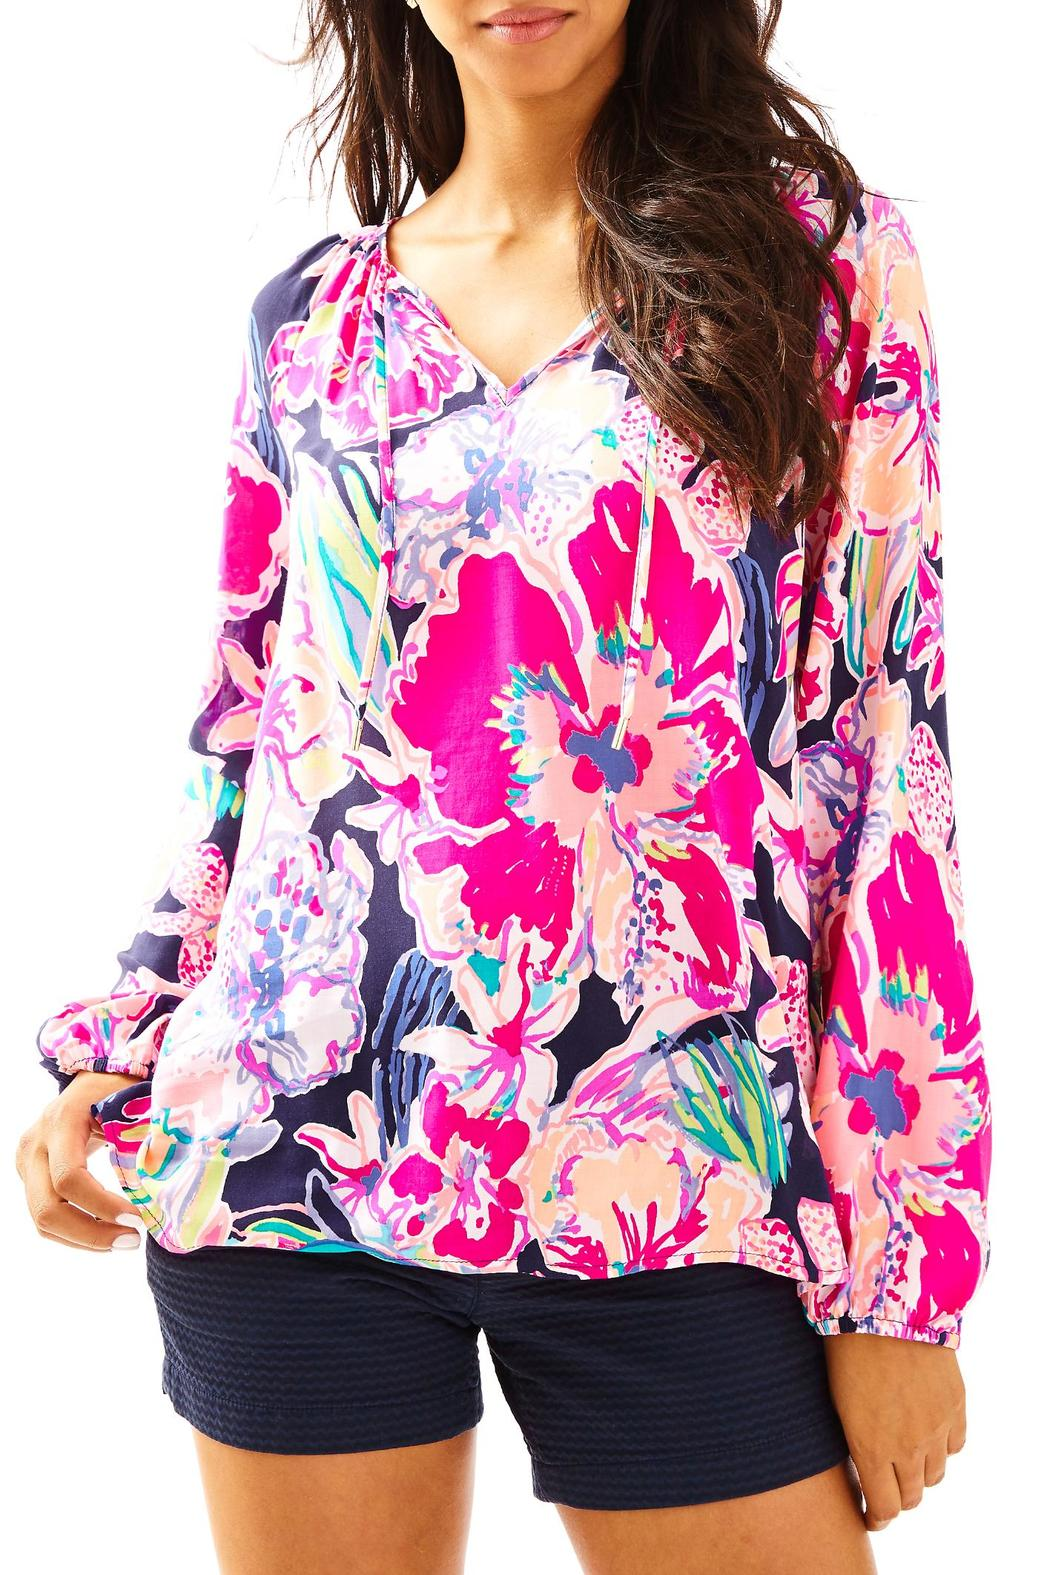 Lilly Pulitzer Willa Tunic Top from Sandestin Golf and